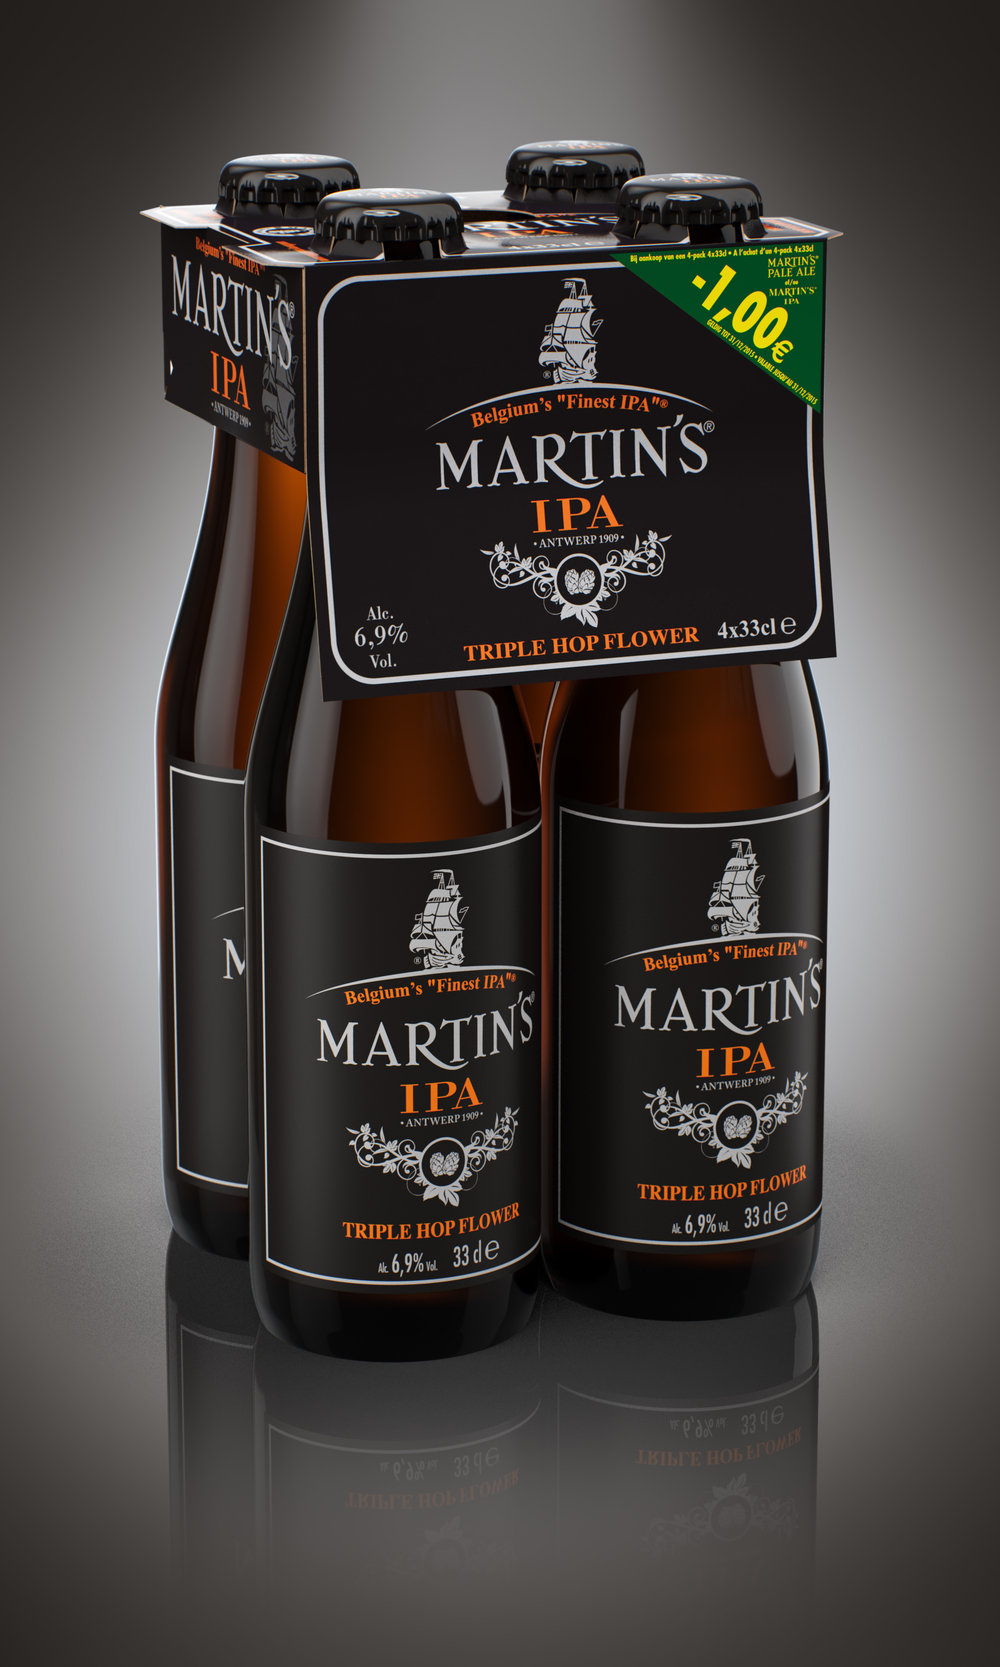 20150430_Martins_IPA_4pack.jpg